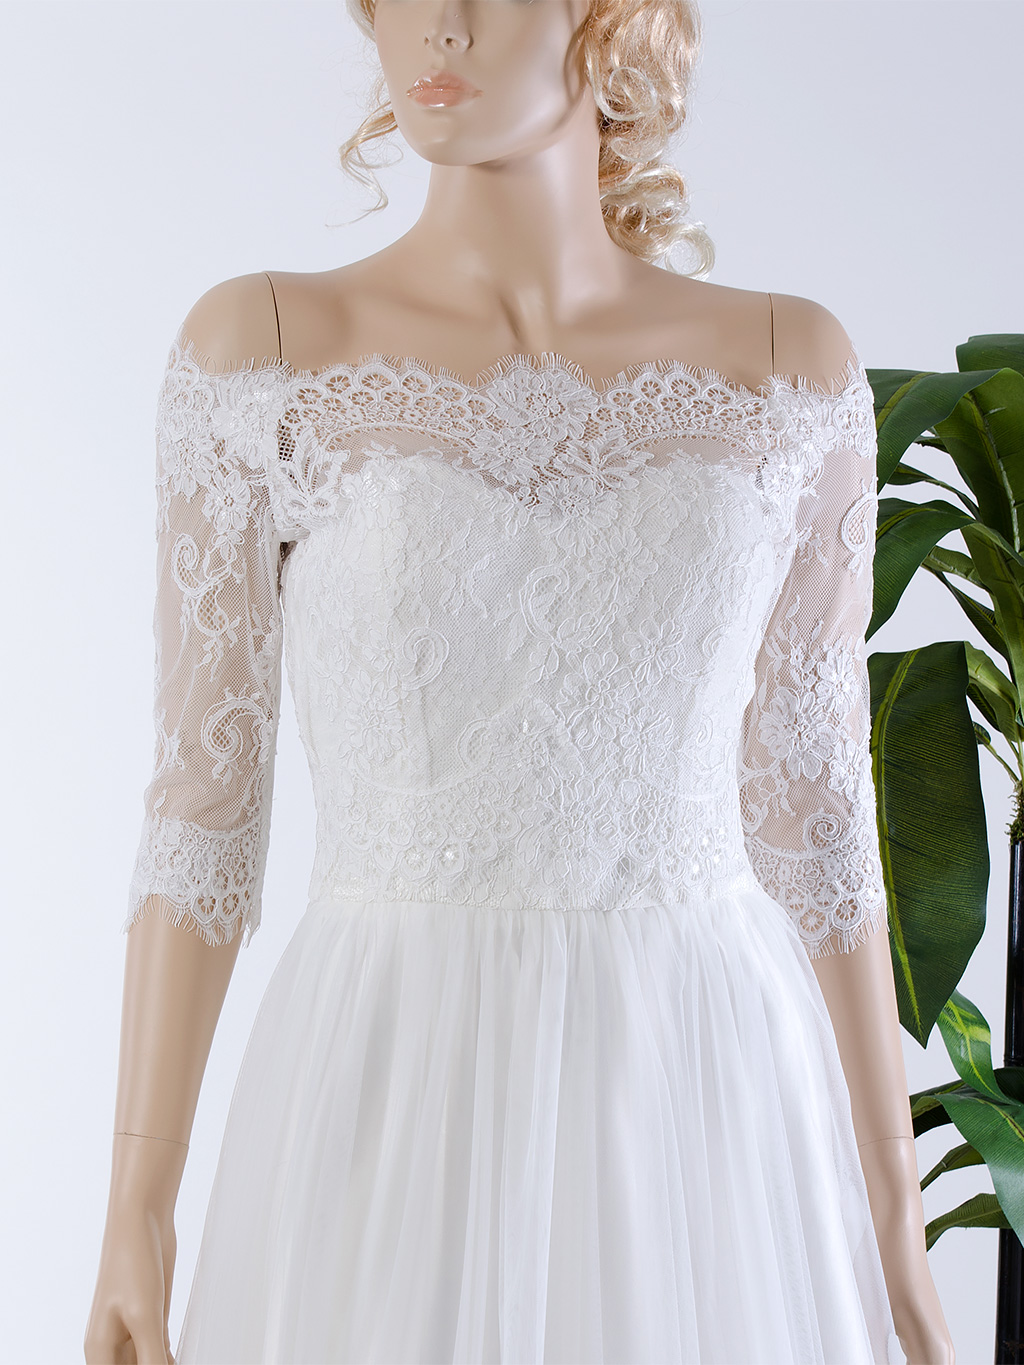 Off-Shoulder Alencon Lace Bolero Wedding jacket wedding dress topper WJ035